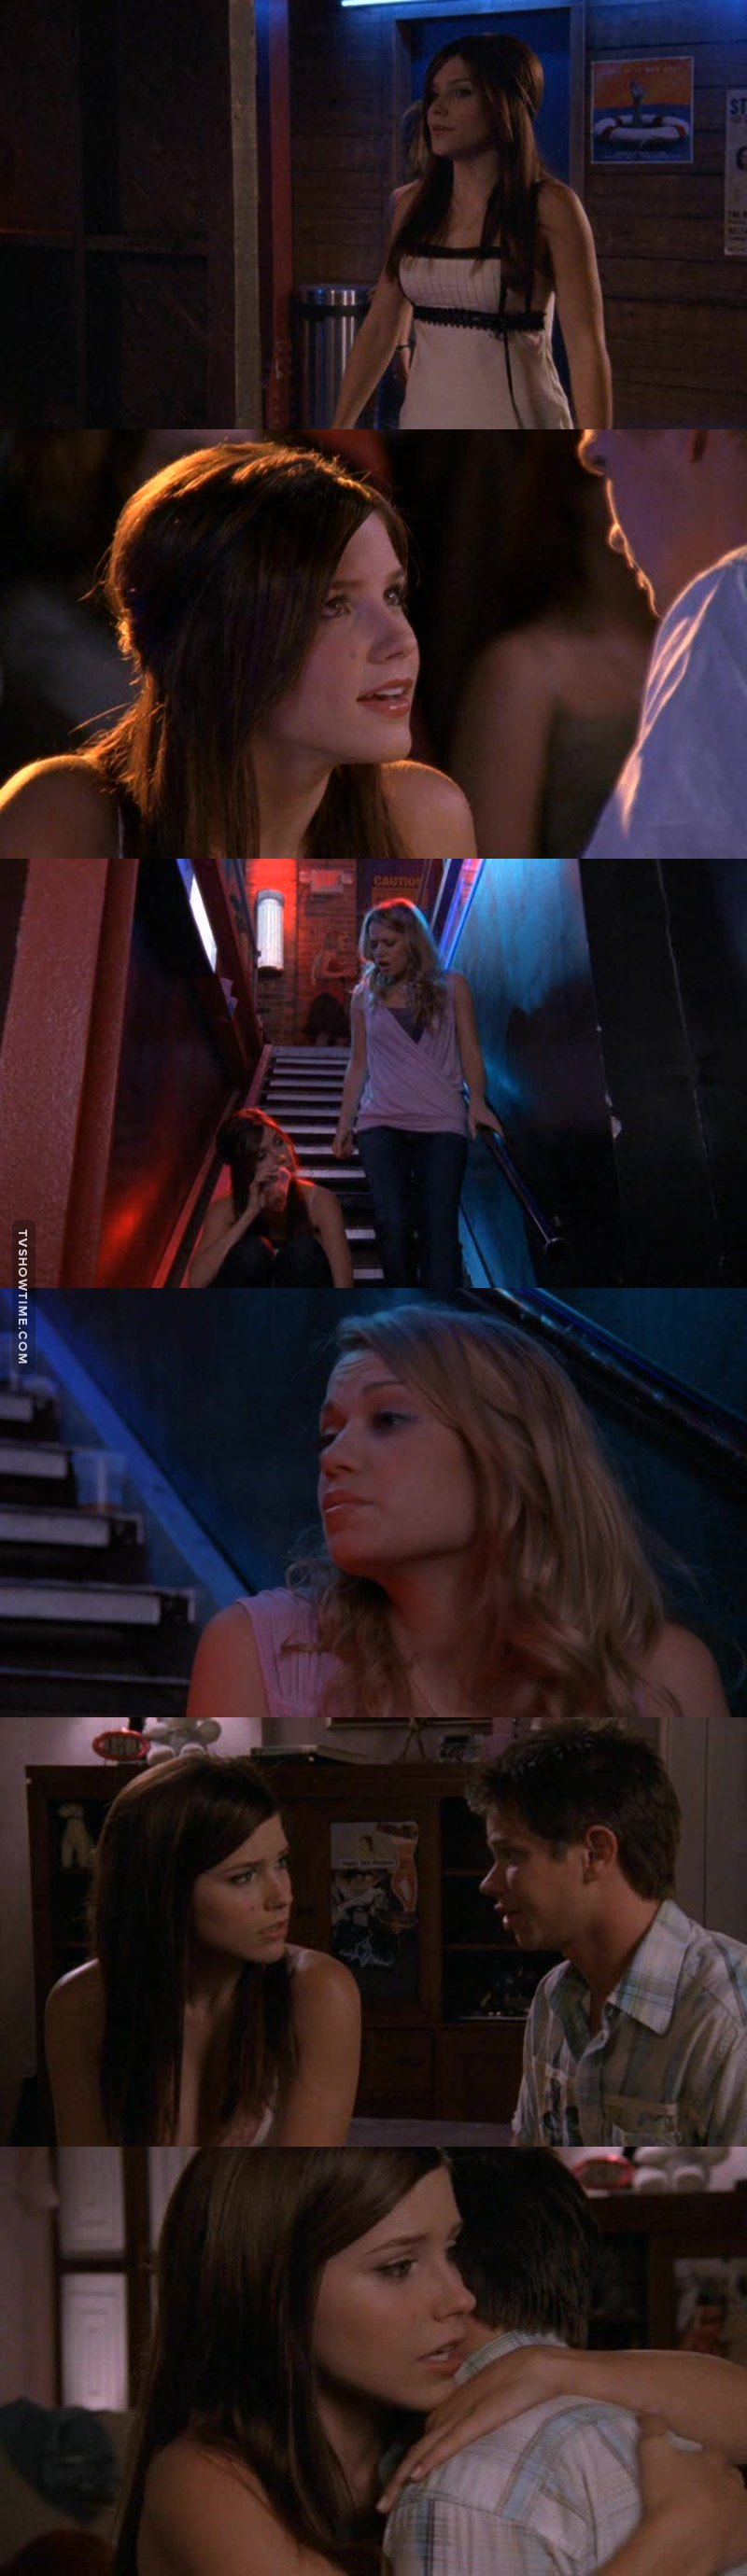 Amazing how Brooke can be such a loyal friend. While everyone was judging her and telling her what to do about her pregnancy she remained faithful to Haley and kept her secret. She didn't care about what people were saying as long as she was helping her best friend, that's why Brooke is awesome, she's a true friend. #TeamBrooke